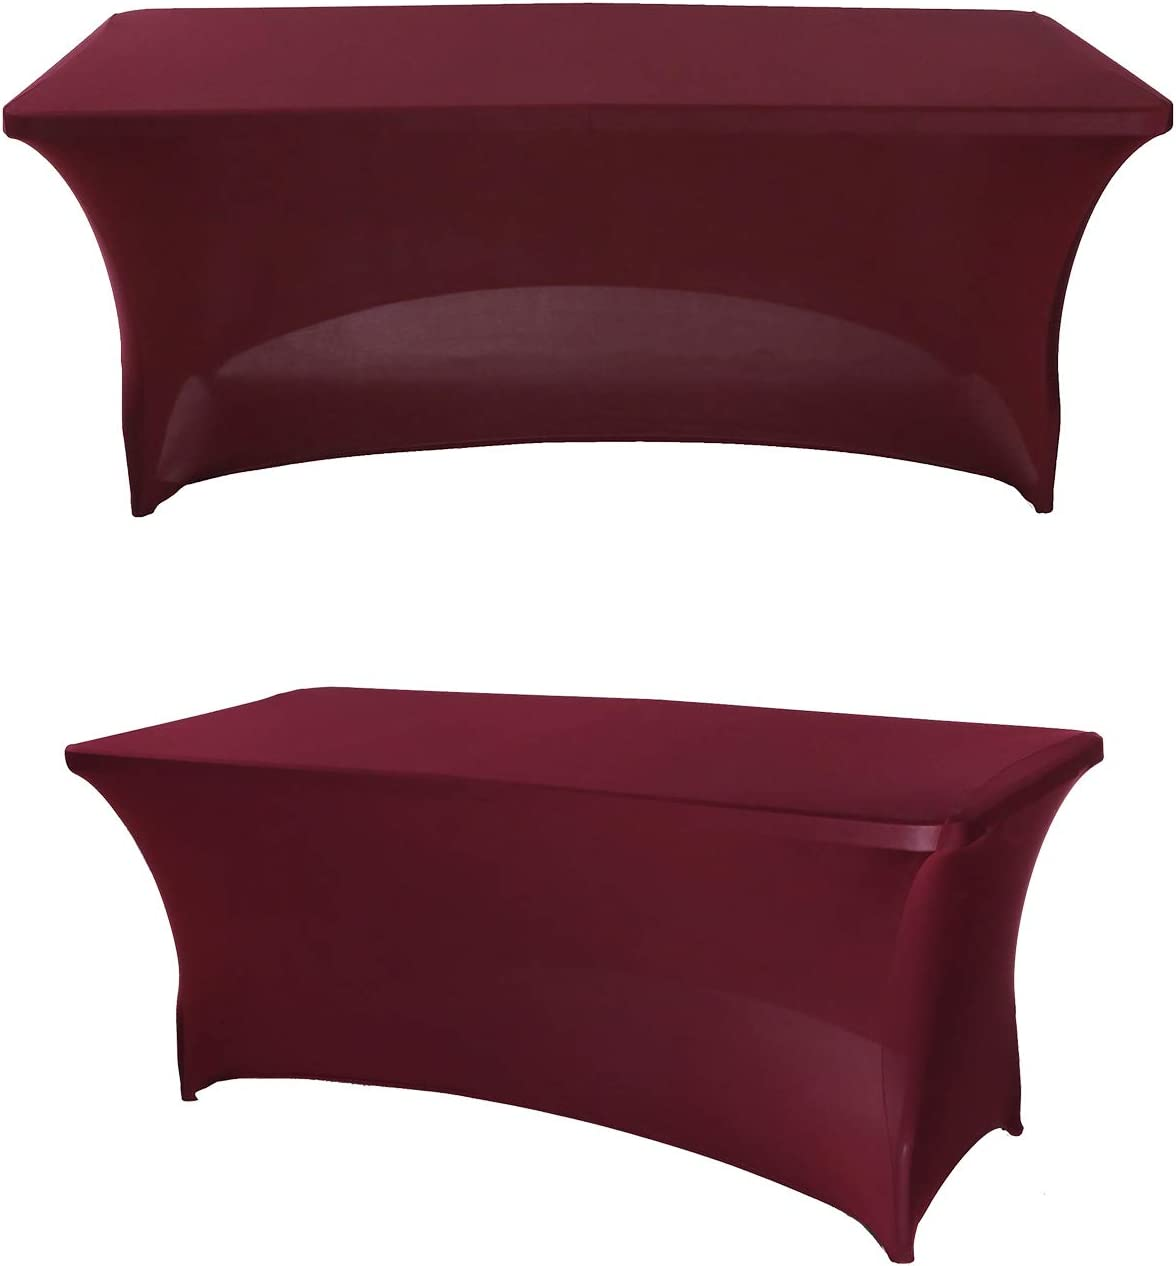 SweetEasy 4FT OFFicial Pack of 2 Spandex Atlanta Mall Cover Stretchable Fitted Table T